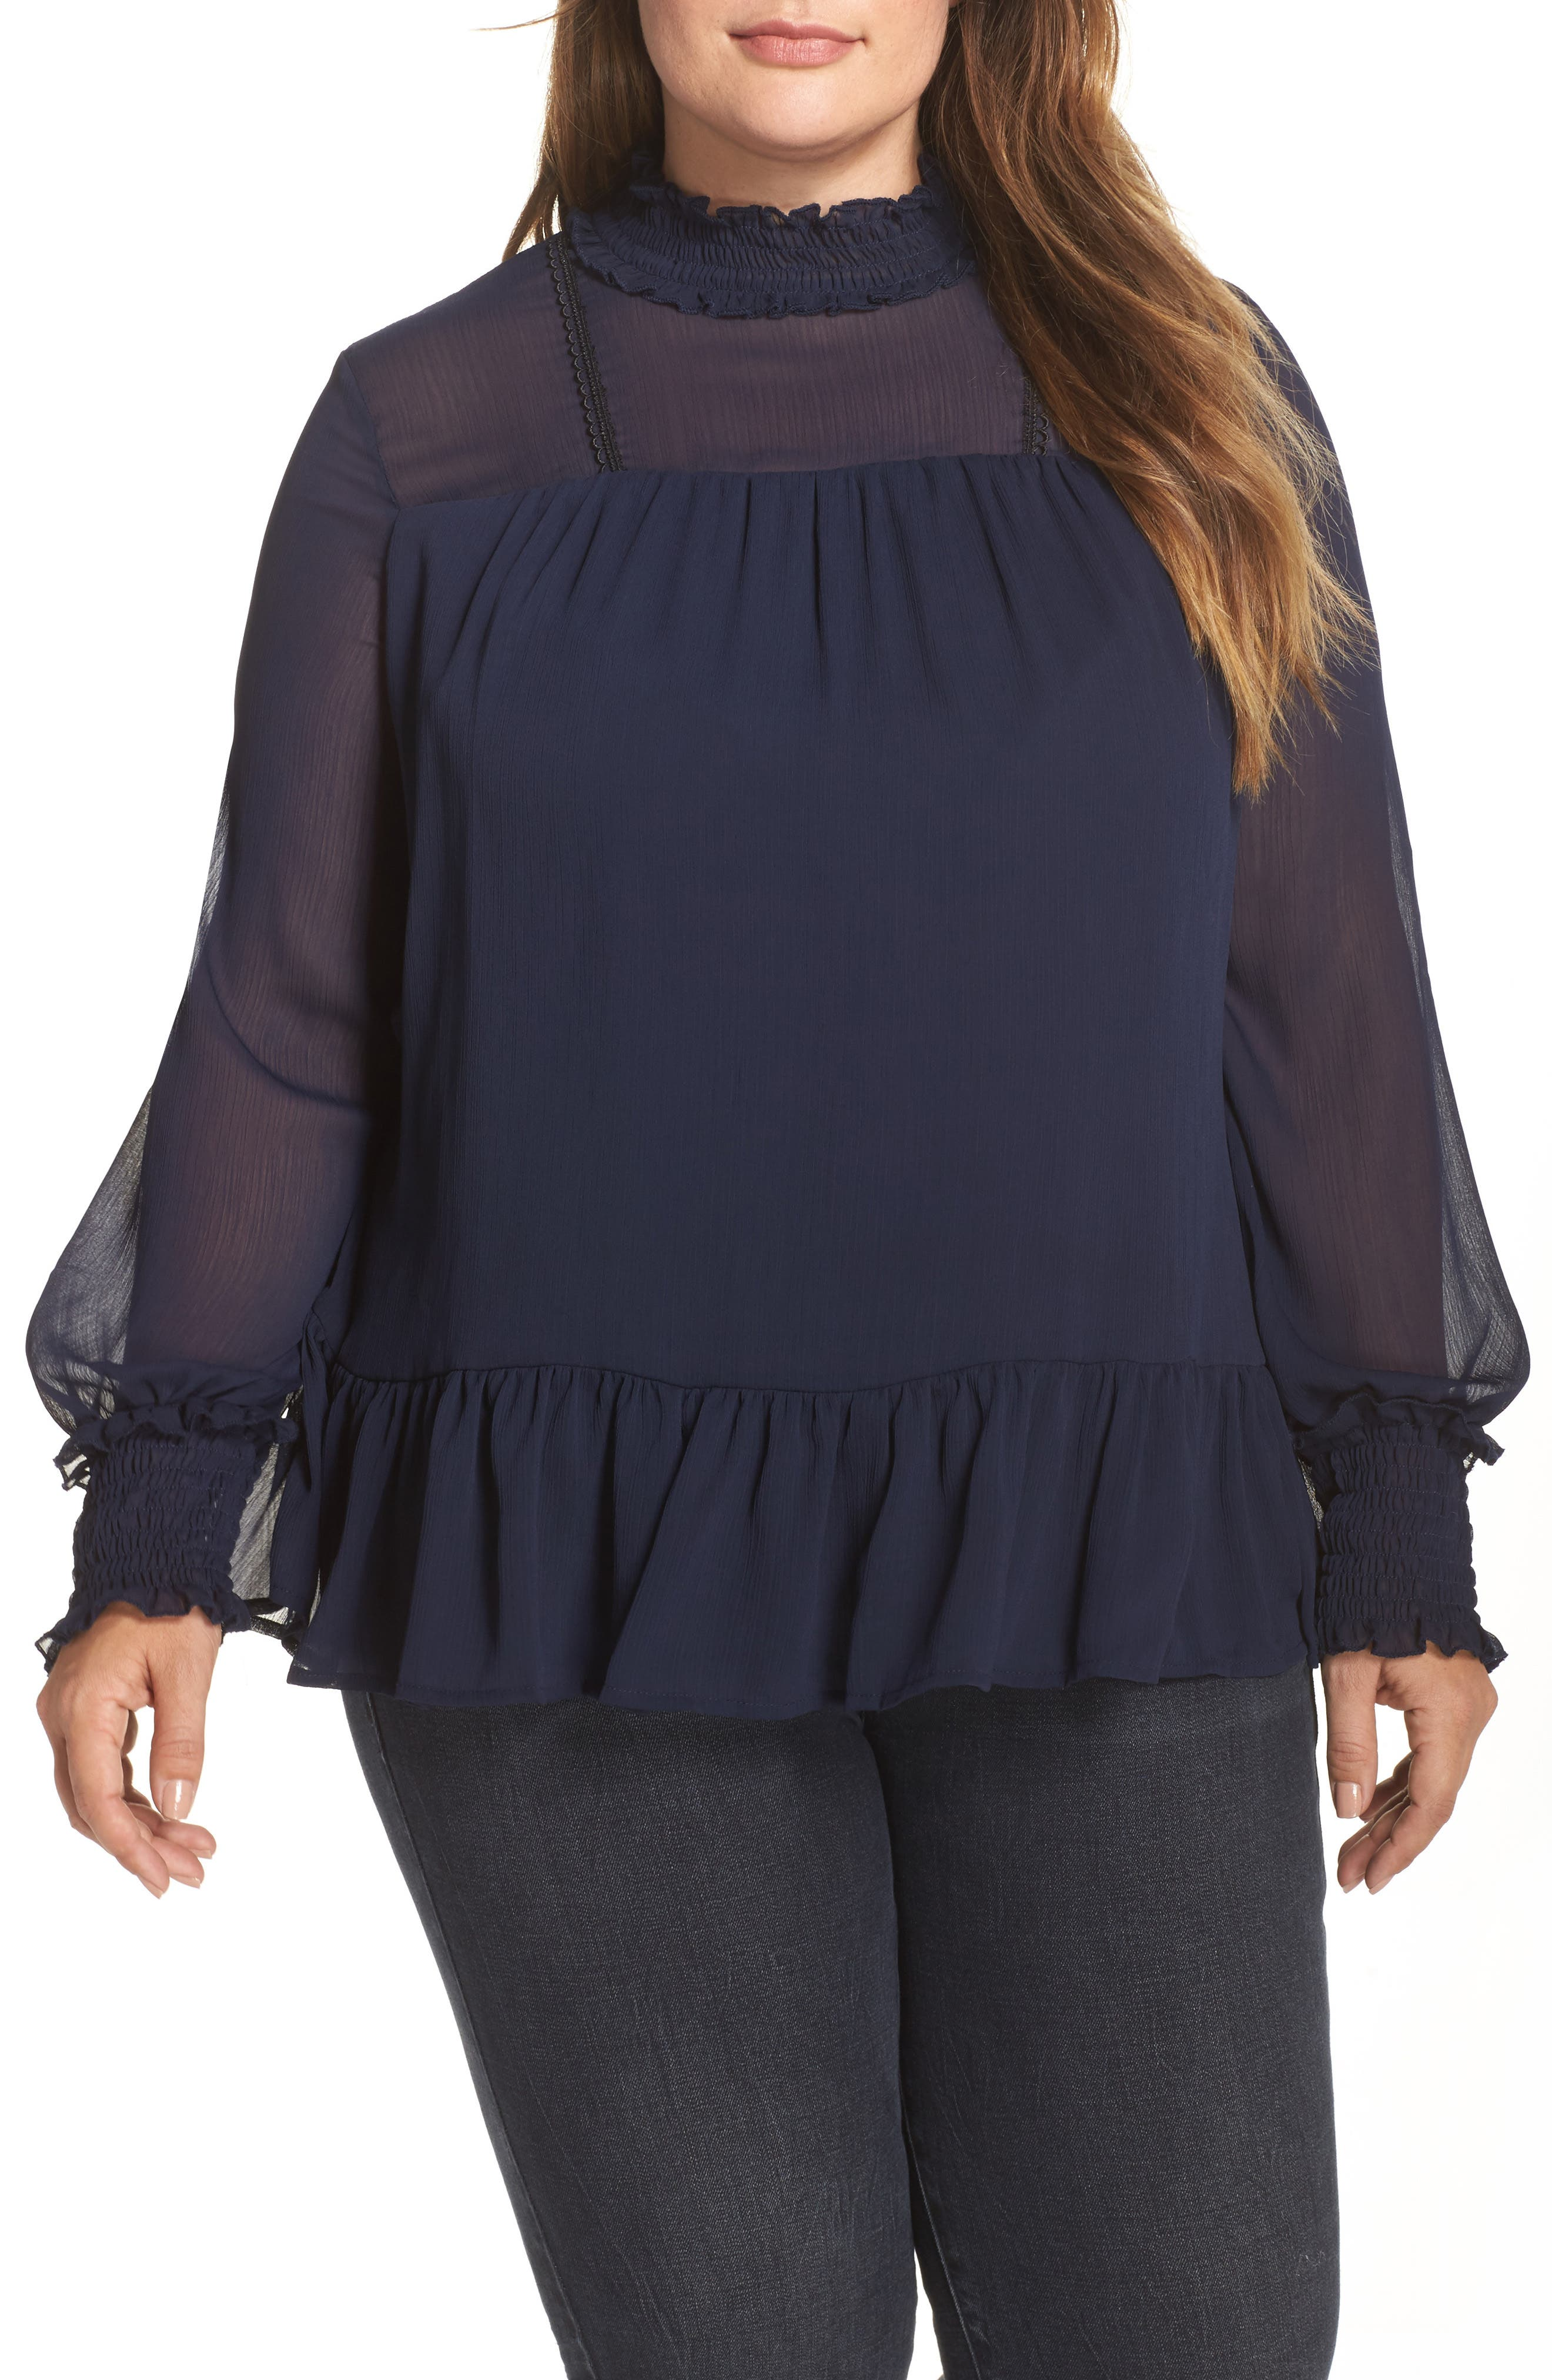 Main Image - LOST INK Lace Trim Babydoll Top (Plus Size)